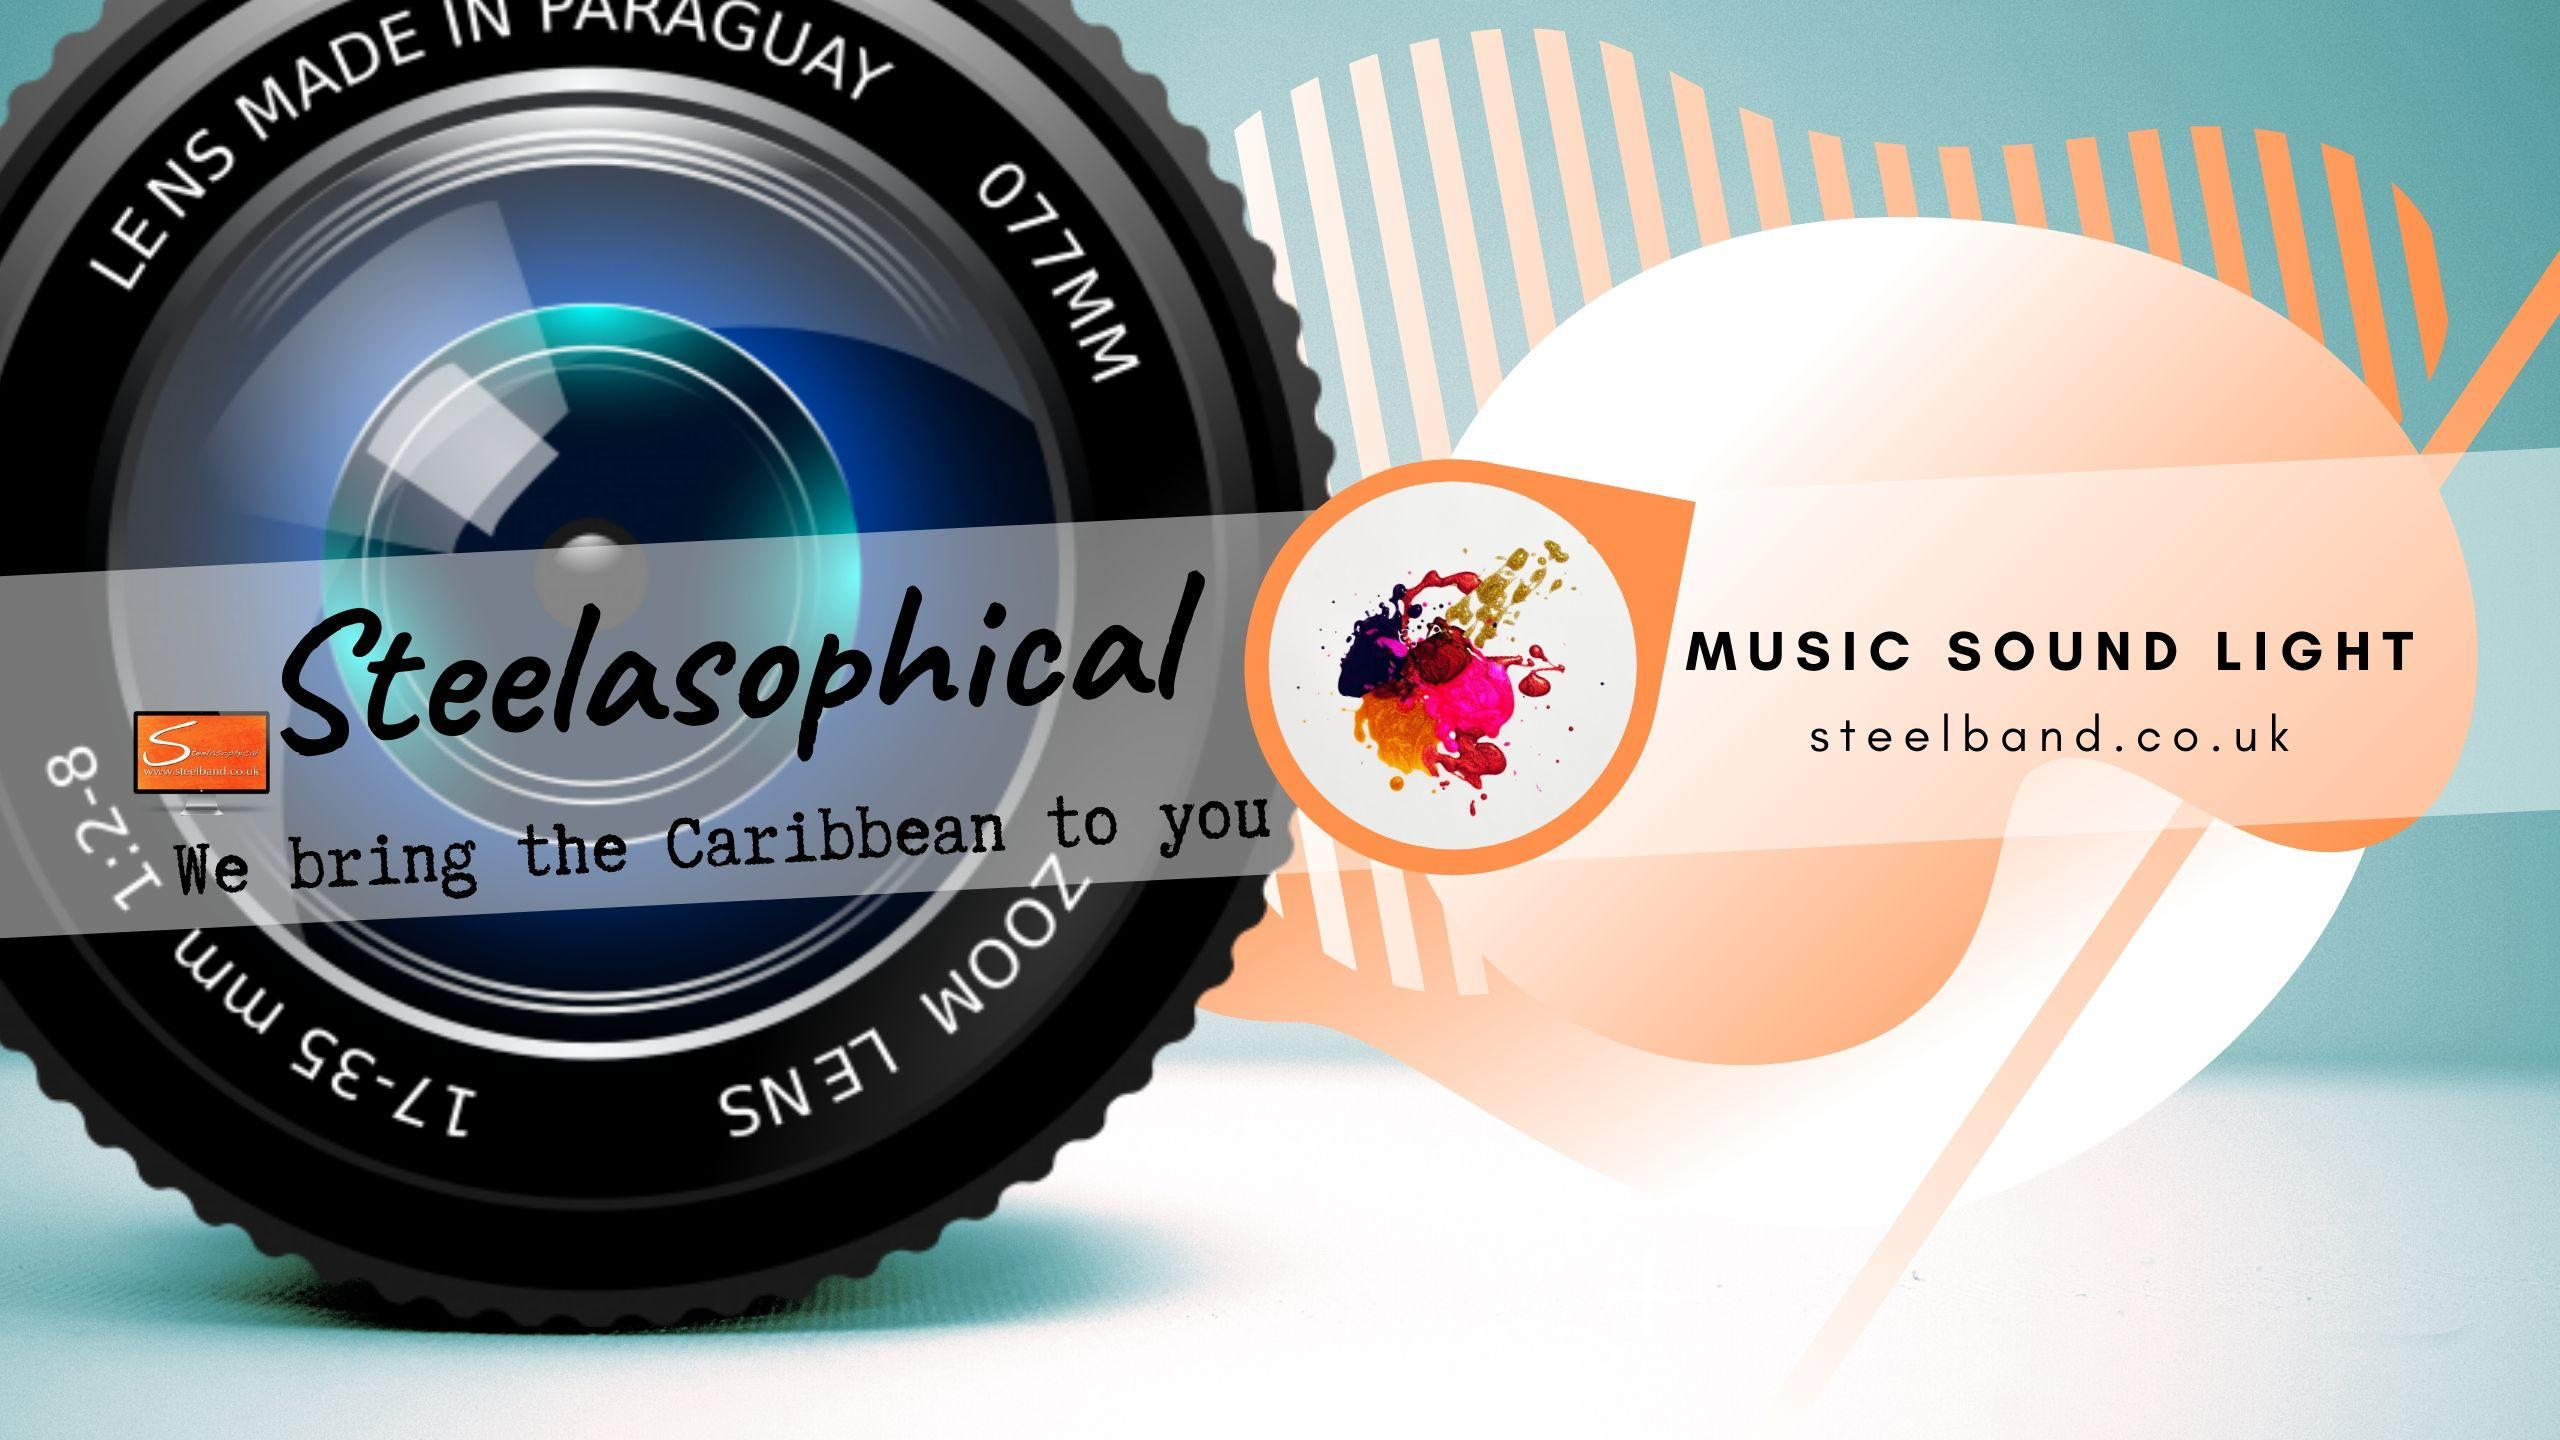 Steelasophical SteelBand for Hire UK steelpans Steeldrums Caribbean Music 01er